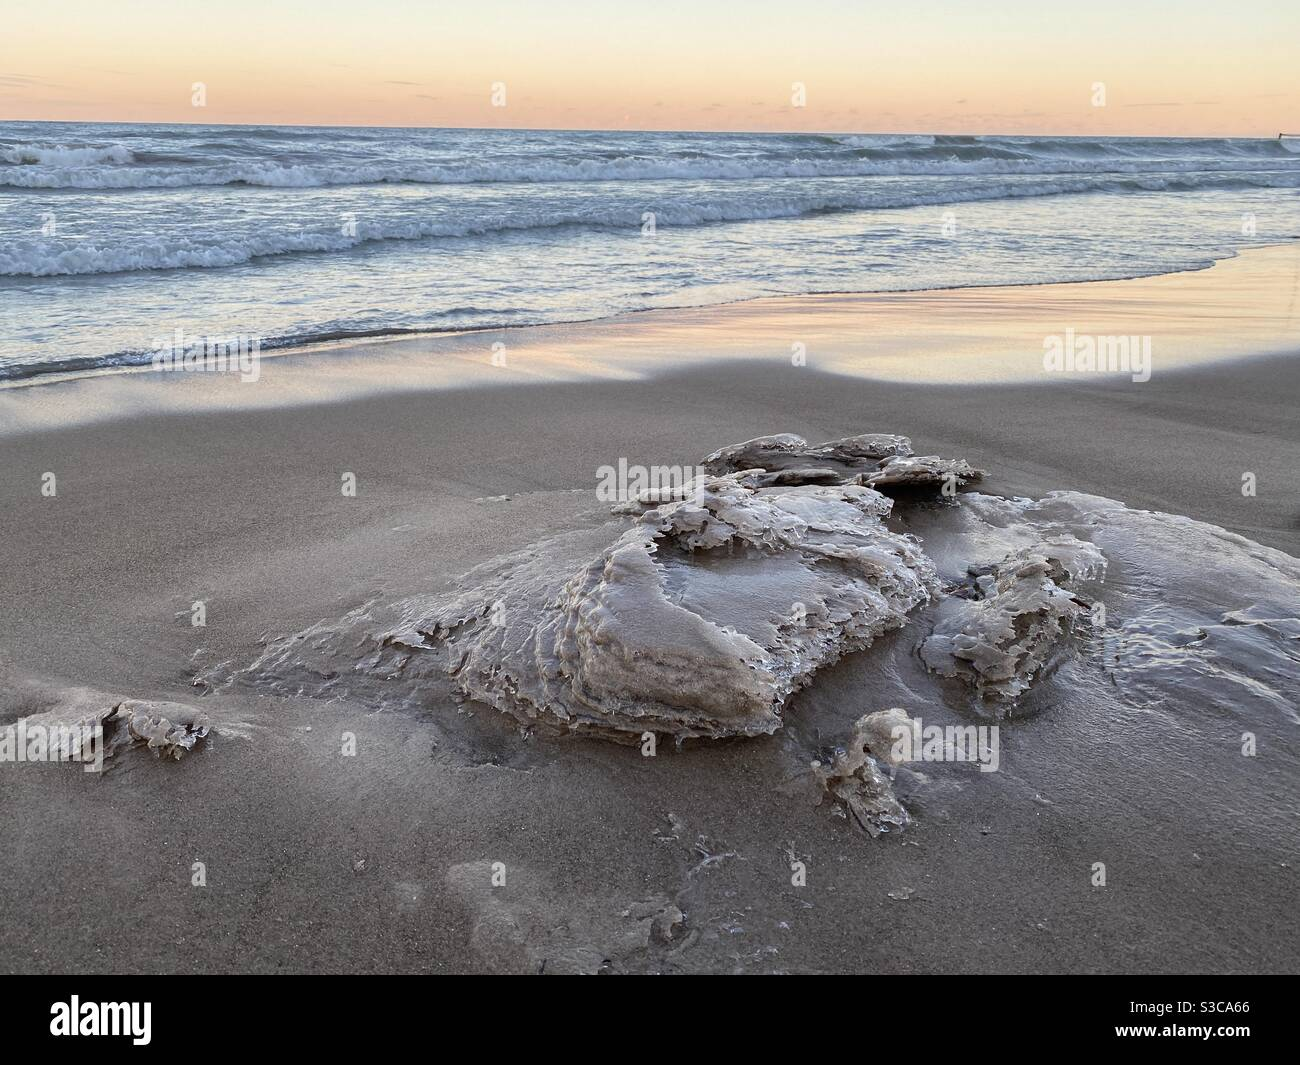 Winter waves leave icy sand sculptures on Lake Michigan beach. Sunset at Gillson Beach on the lake's Illinois shore. Stock Photo